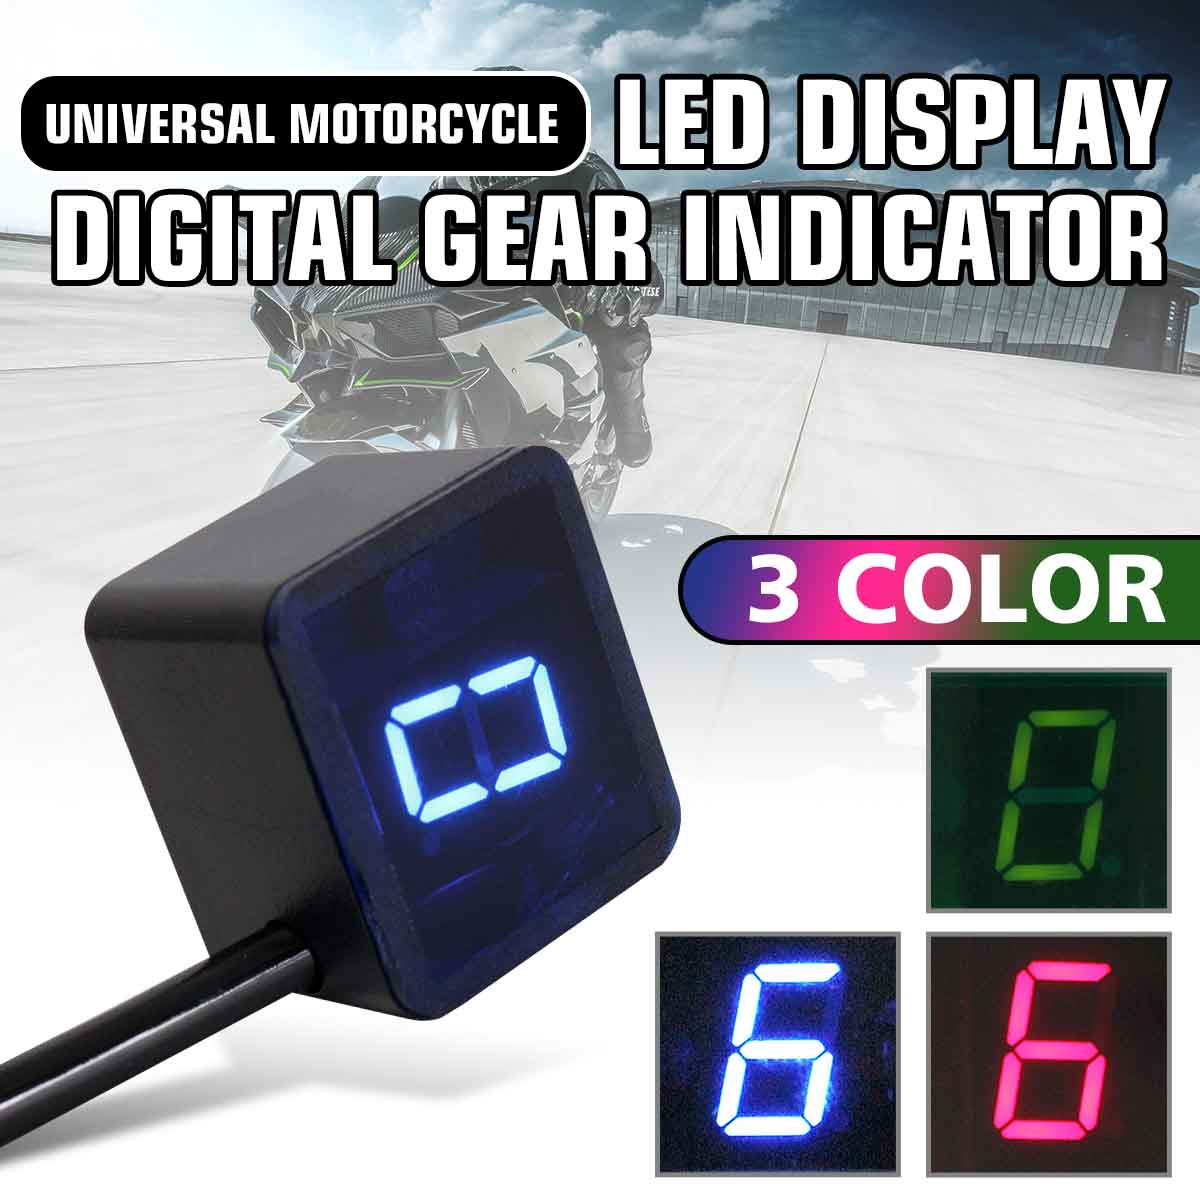 6 Speed Neutral Universal Motorcycle/Bike Digital Gear Indicator LED Display + Shift Lever Magnet